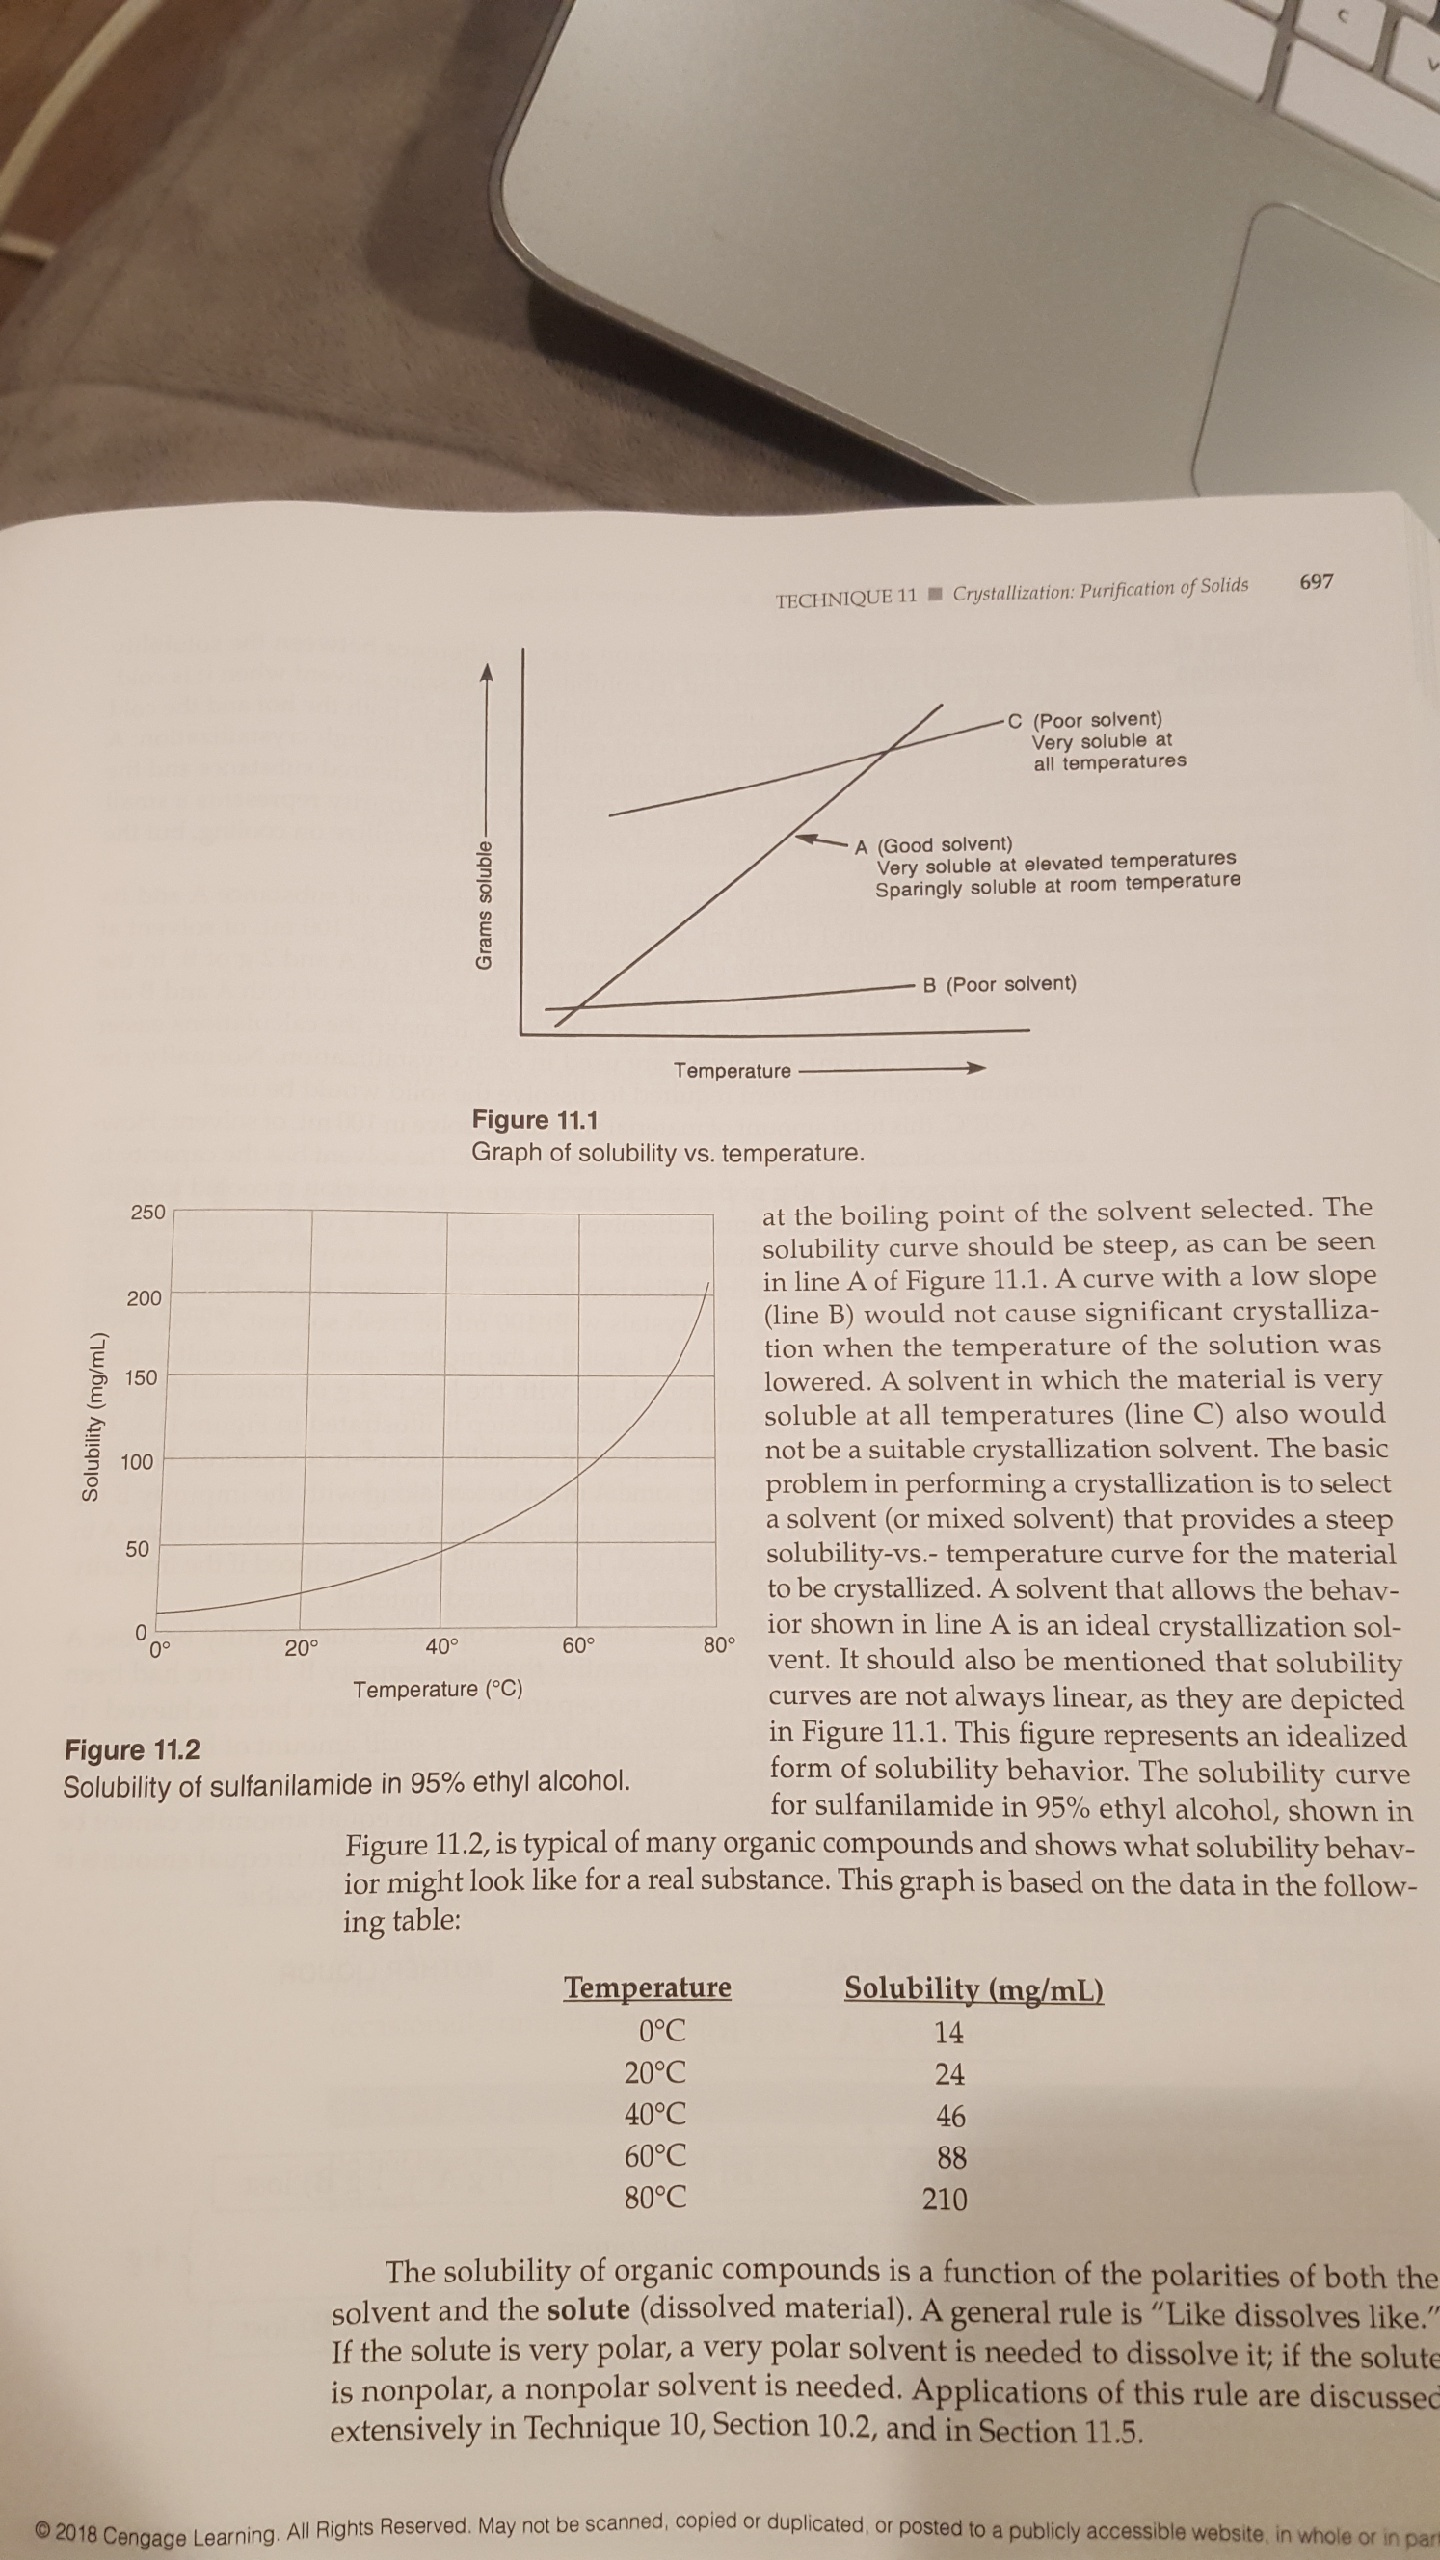 """V 697 Crystallization: Purification of Solids TECHNIQUE 11 C (Poor solvent) Very soluble at all temperatures A (Good solvent) Very soluble at elevated temperatures Sparingly soluble at room temperatu re B (Poor solvent) Temperature Figure 11.1 Graph of solubility vs. temperature. at the boiling point of the solvent selected. The as can be seen 250 solubility curve should be steep, in line A of Figure 11.1. A curve with a low slope significant crystalliza- tion when the temperature of the solution was lowered. A solvent in which the material is very soluble at all temperatures (line C) also would not be a suitable crystallization solvent. The basic problem in performing a crystallization is to select a solvent (or mixed solvent) that provides a steep solubility-vs.- temperature curve for the material to be crystallized. A solvent that allows the behav- ior shown in line A is an ideal crystallization sol- vent. It should also be mentioned that solubility 200 (line B) would not cause 150 100 50 60° 80 40° 20° Temperature (C) curves are not always linear, they depicted in Figure 11.1. This figure represents an idealized form of solubility behavior. The solubility for sulfanilamide in 95% ethyl alcohol, shown in Figure 11.2, is typical of many organic compounds and shows what solubility behav- ior might look like for a real substance. This graph is based on the data in the follow- as are Figure 11.2 Solubility of sulfanilamide in 95% ethyl alcohol. curve ing table: Solubility (mg/mL) Temperature 0°C 14 20°C 24 40°C 46 60°C 88 80°C 210 The solubility of organic compounds is a function of the polarities of both the solvent and the solute (dissolved material). A general rule is """"Like dissolves like."""" If the solute is very polar, a very polar solvent is needed to dissolve it; if the solute is nonpolar, a nonpolar solvent is needed. Applications of this rule are discussec extensively in Technique 10, Section 10.2, and in Section 11.5. canned, copied Solubility (mg/mL) Grams s"""